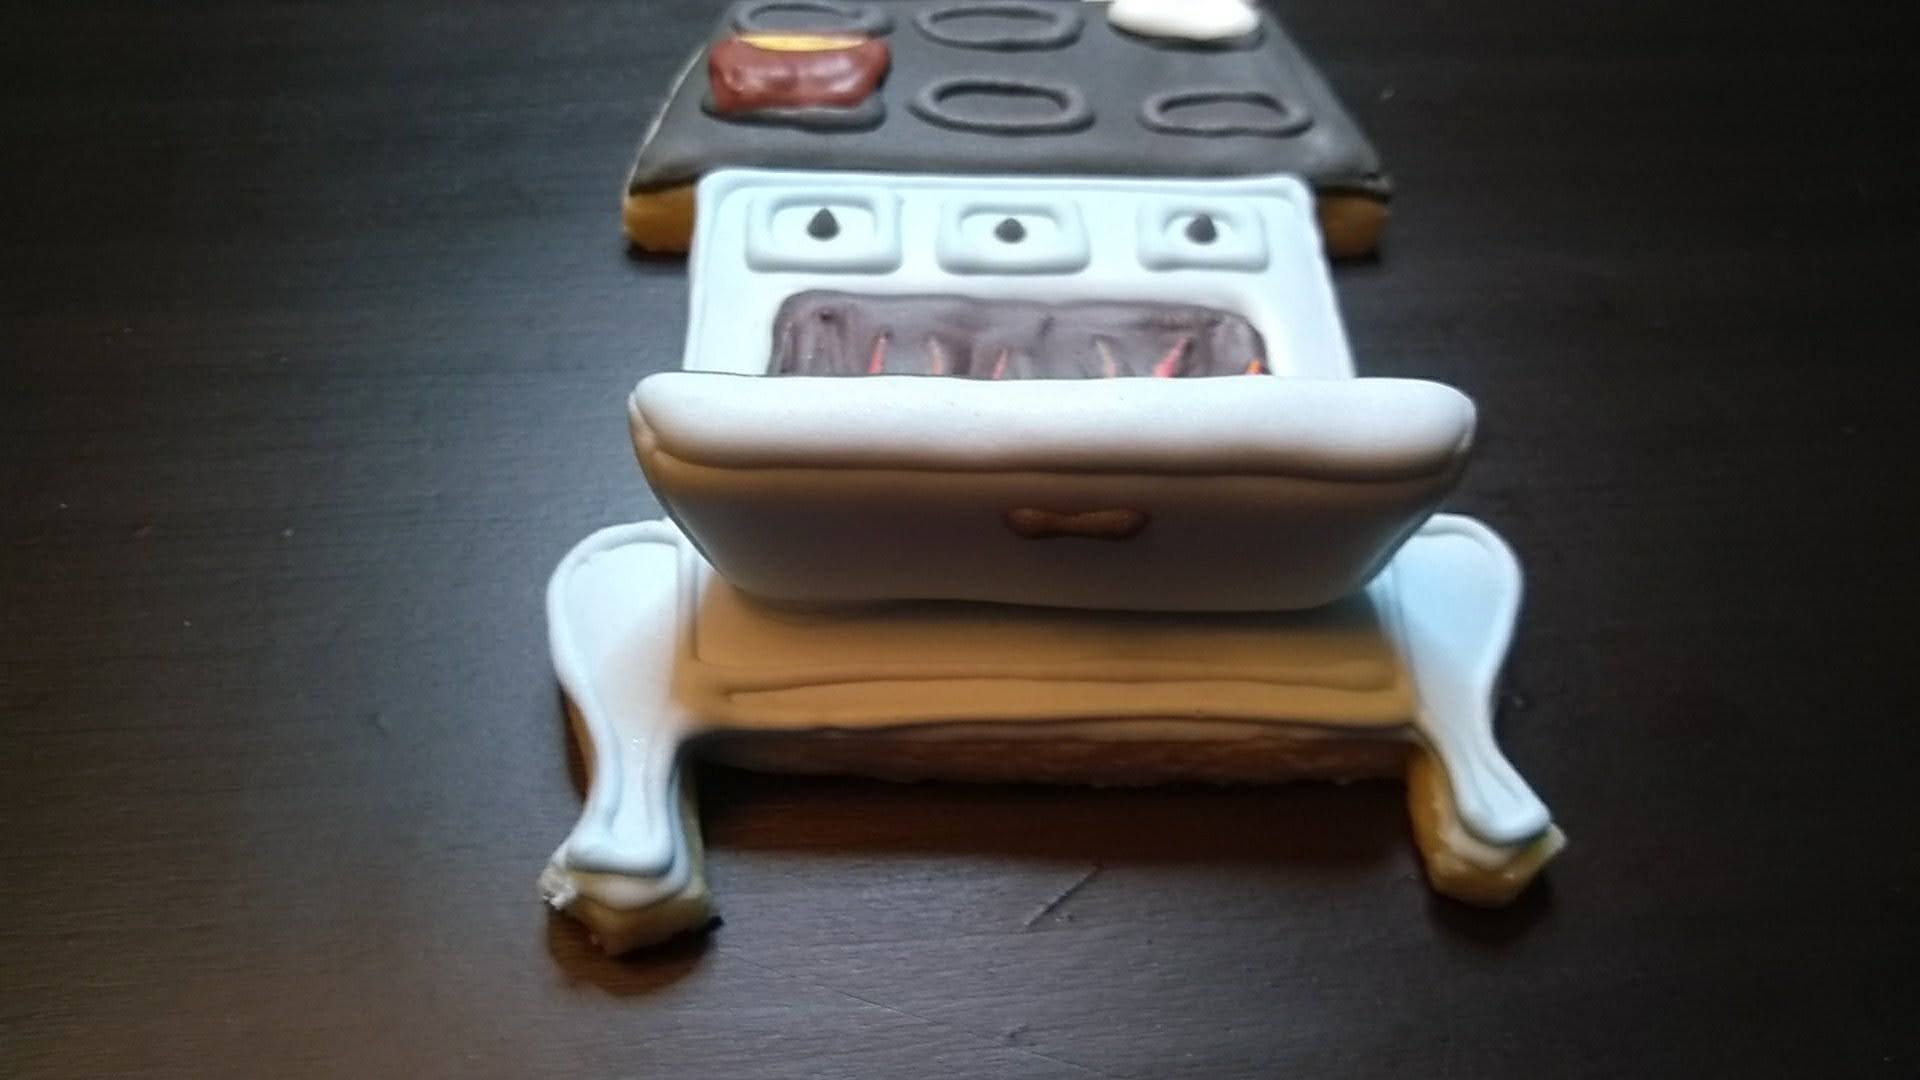 wood stove royal icing cookie